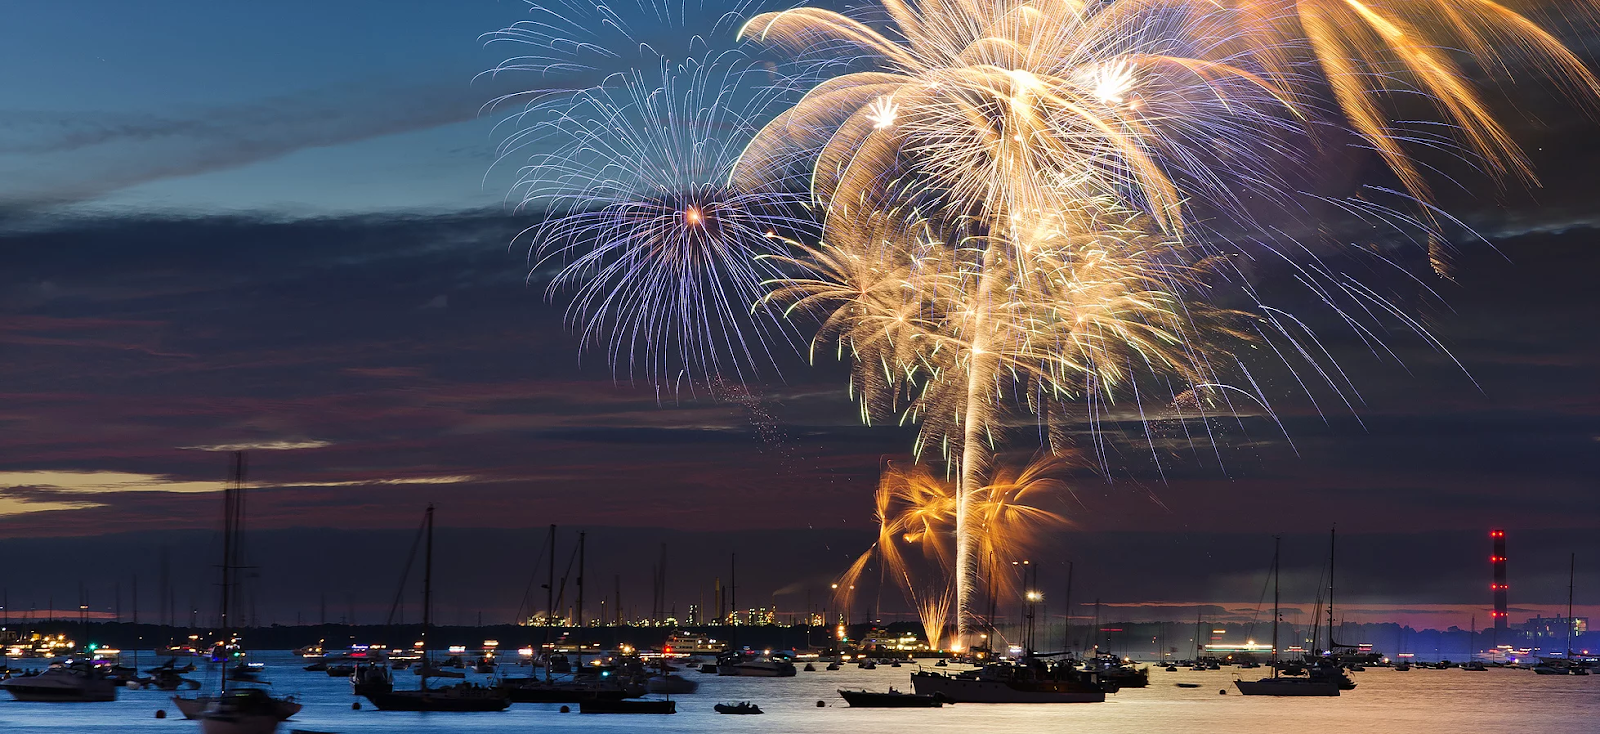 Fireworks at Cowes